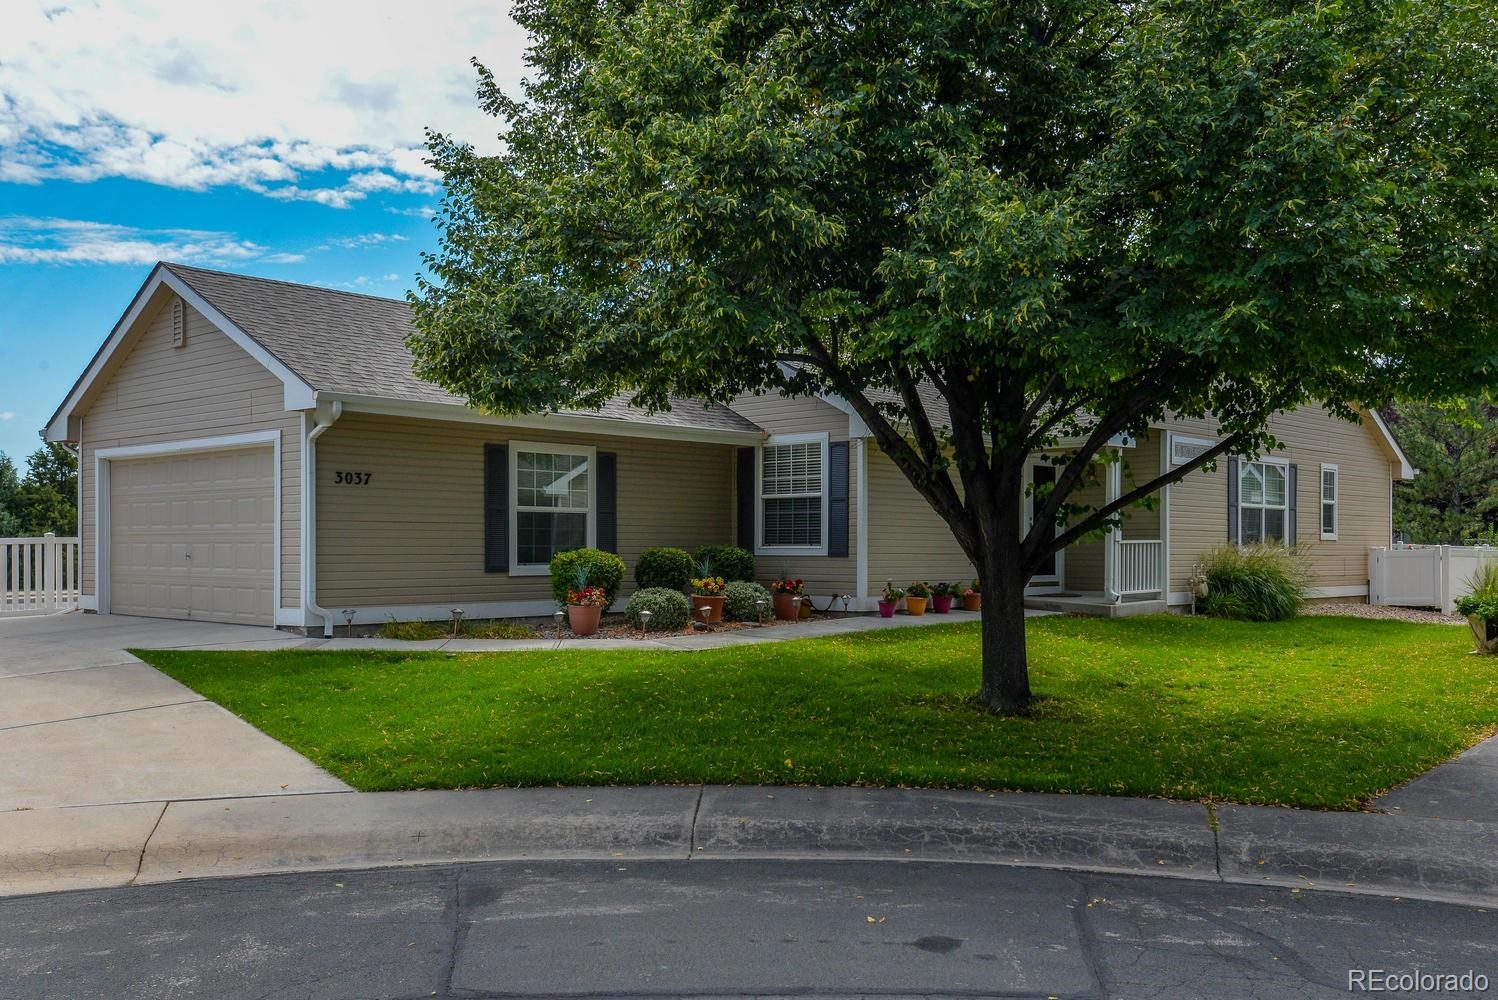 MLS# 5717707 - 1 - 3037 Antelope Road, Fort Collins, CO 80525